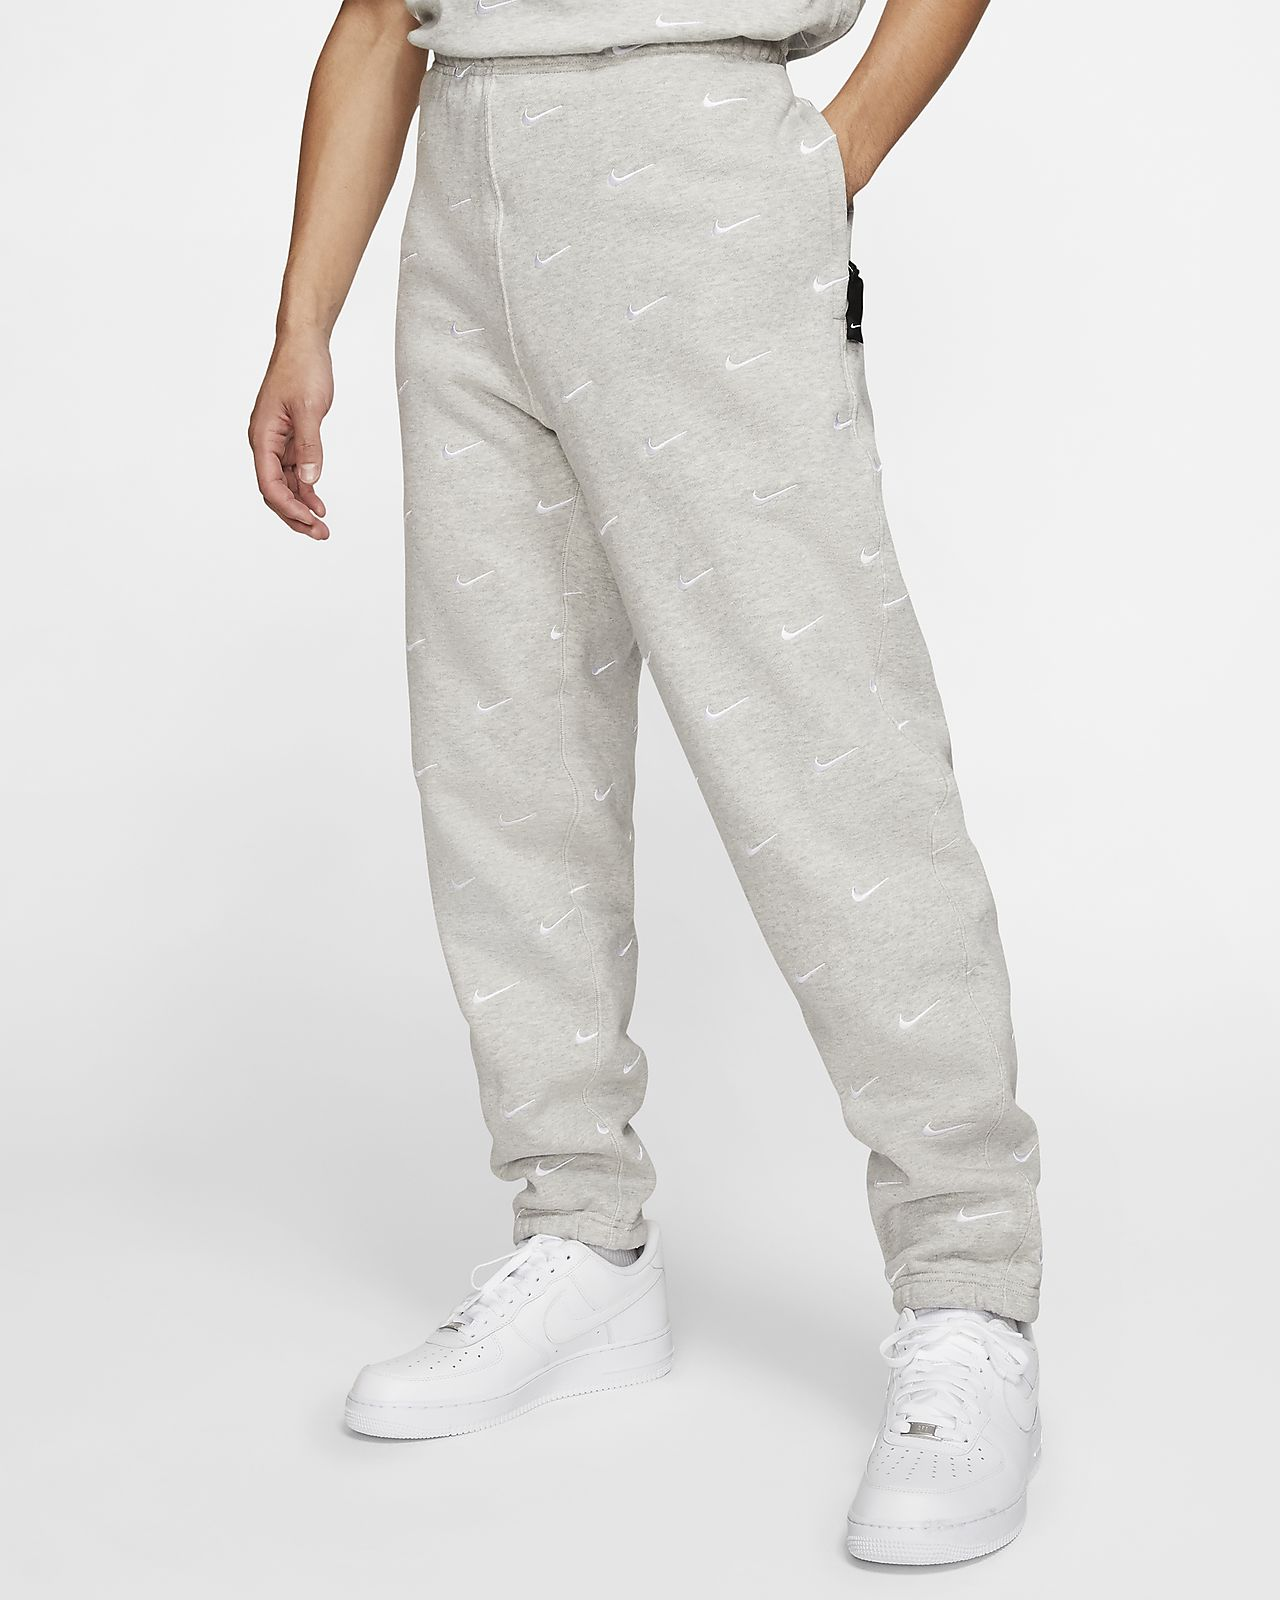 Nike Men's Swoosh Logo Trousers